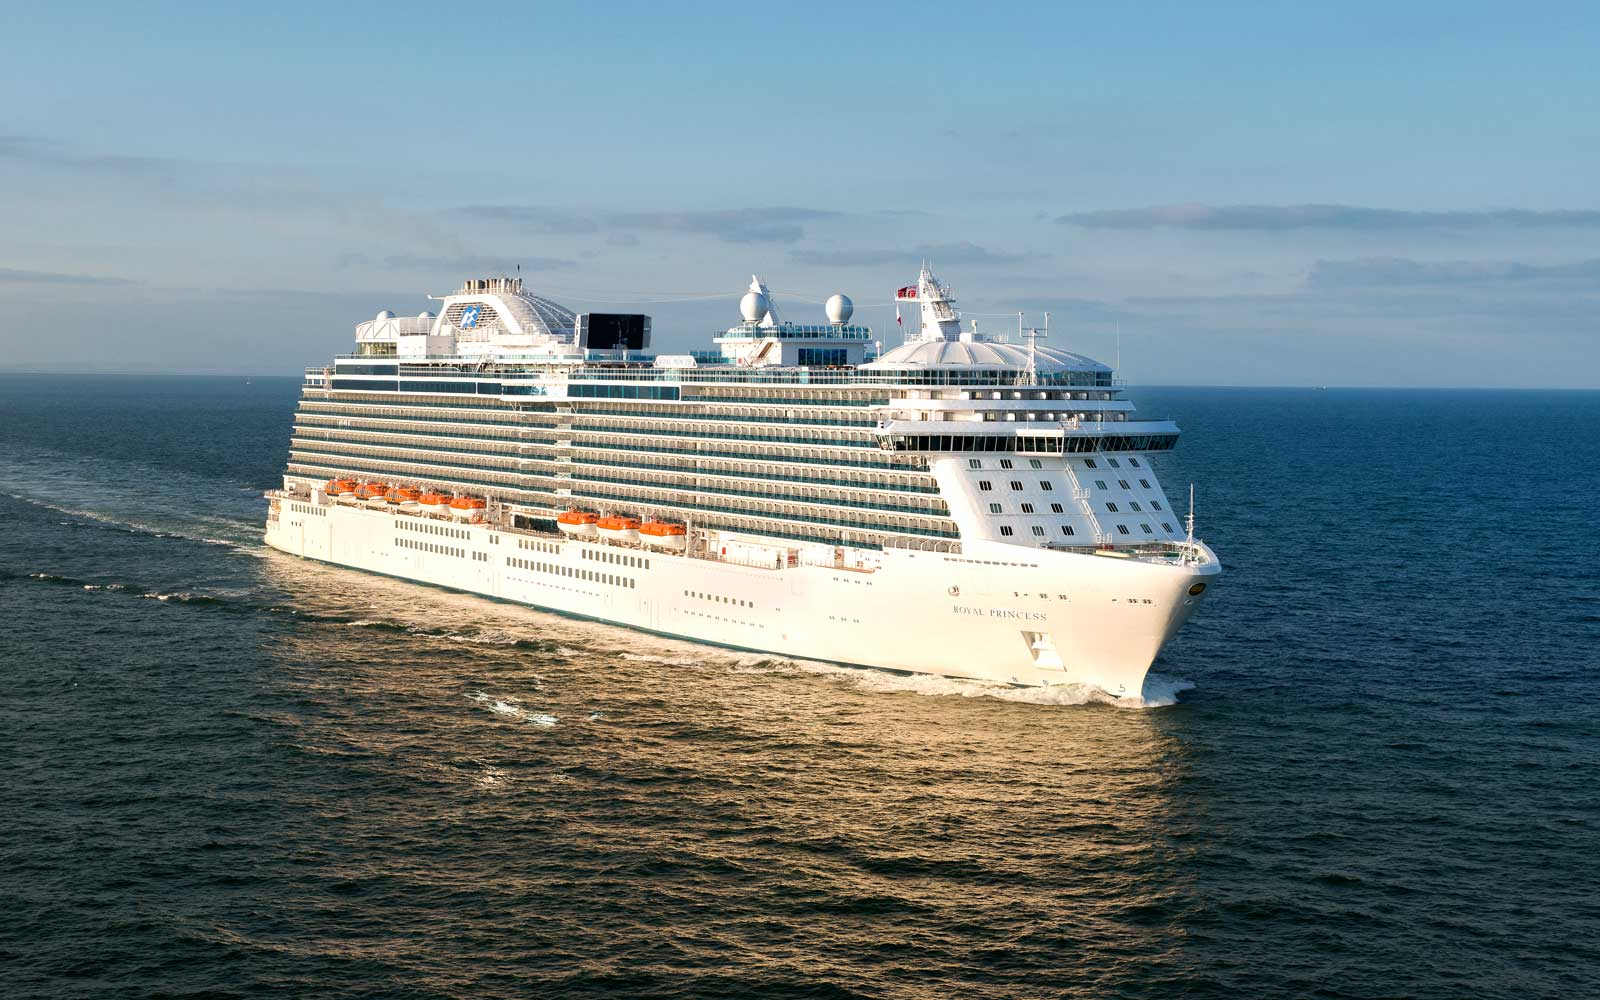 Five Things to Know About Princess Cruises' Royal Princess Cruise Ship